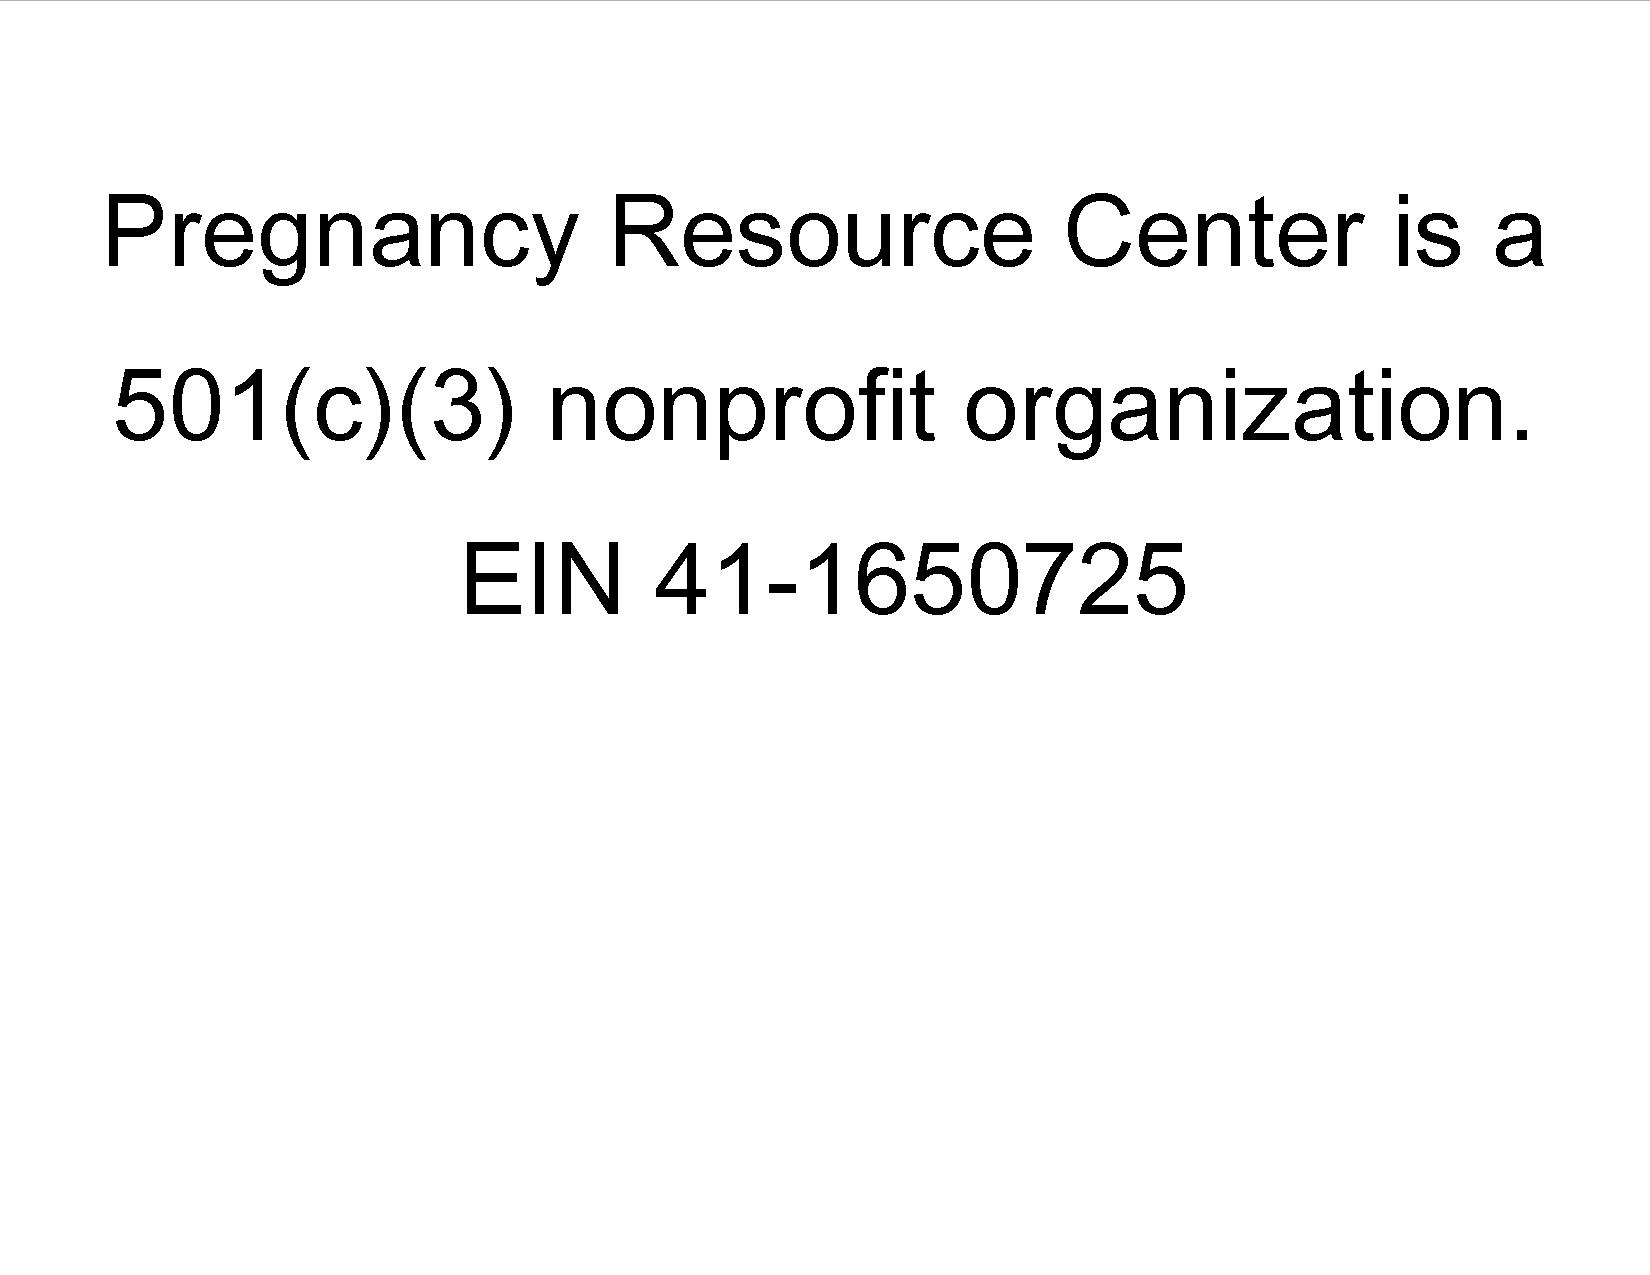 Non profit statement for egiving page